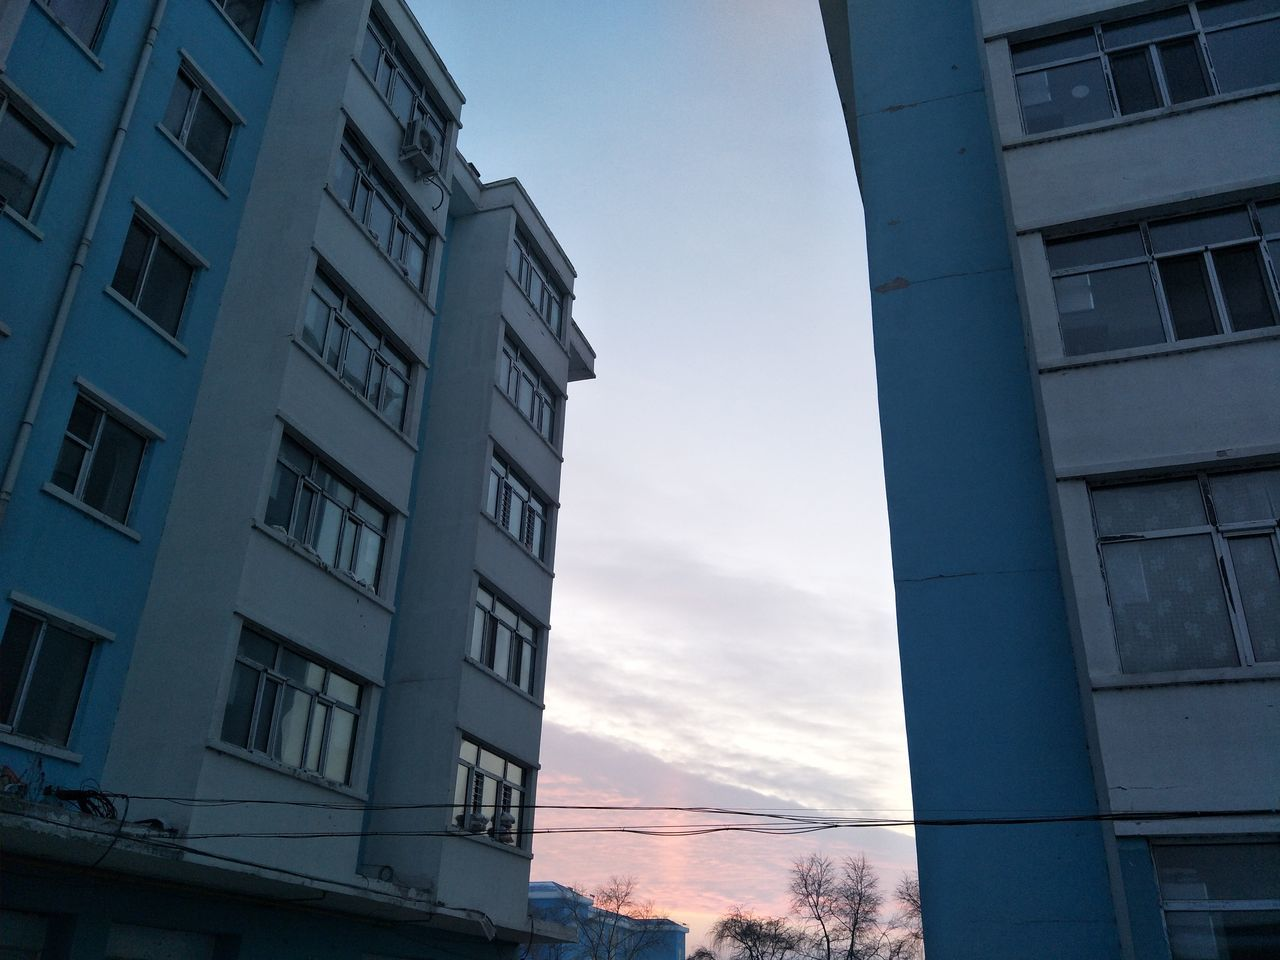 architecture, building exterior, built structure, low angle view, window, no people, day, sky, outdoors, residential building, city, nature